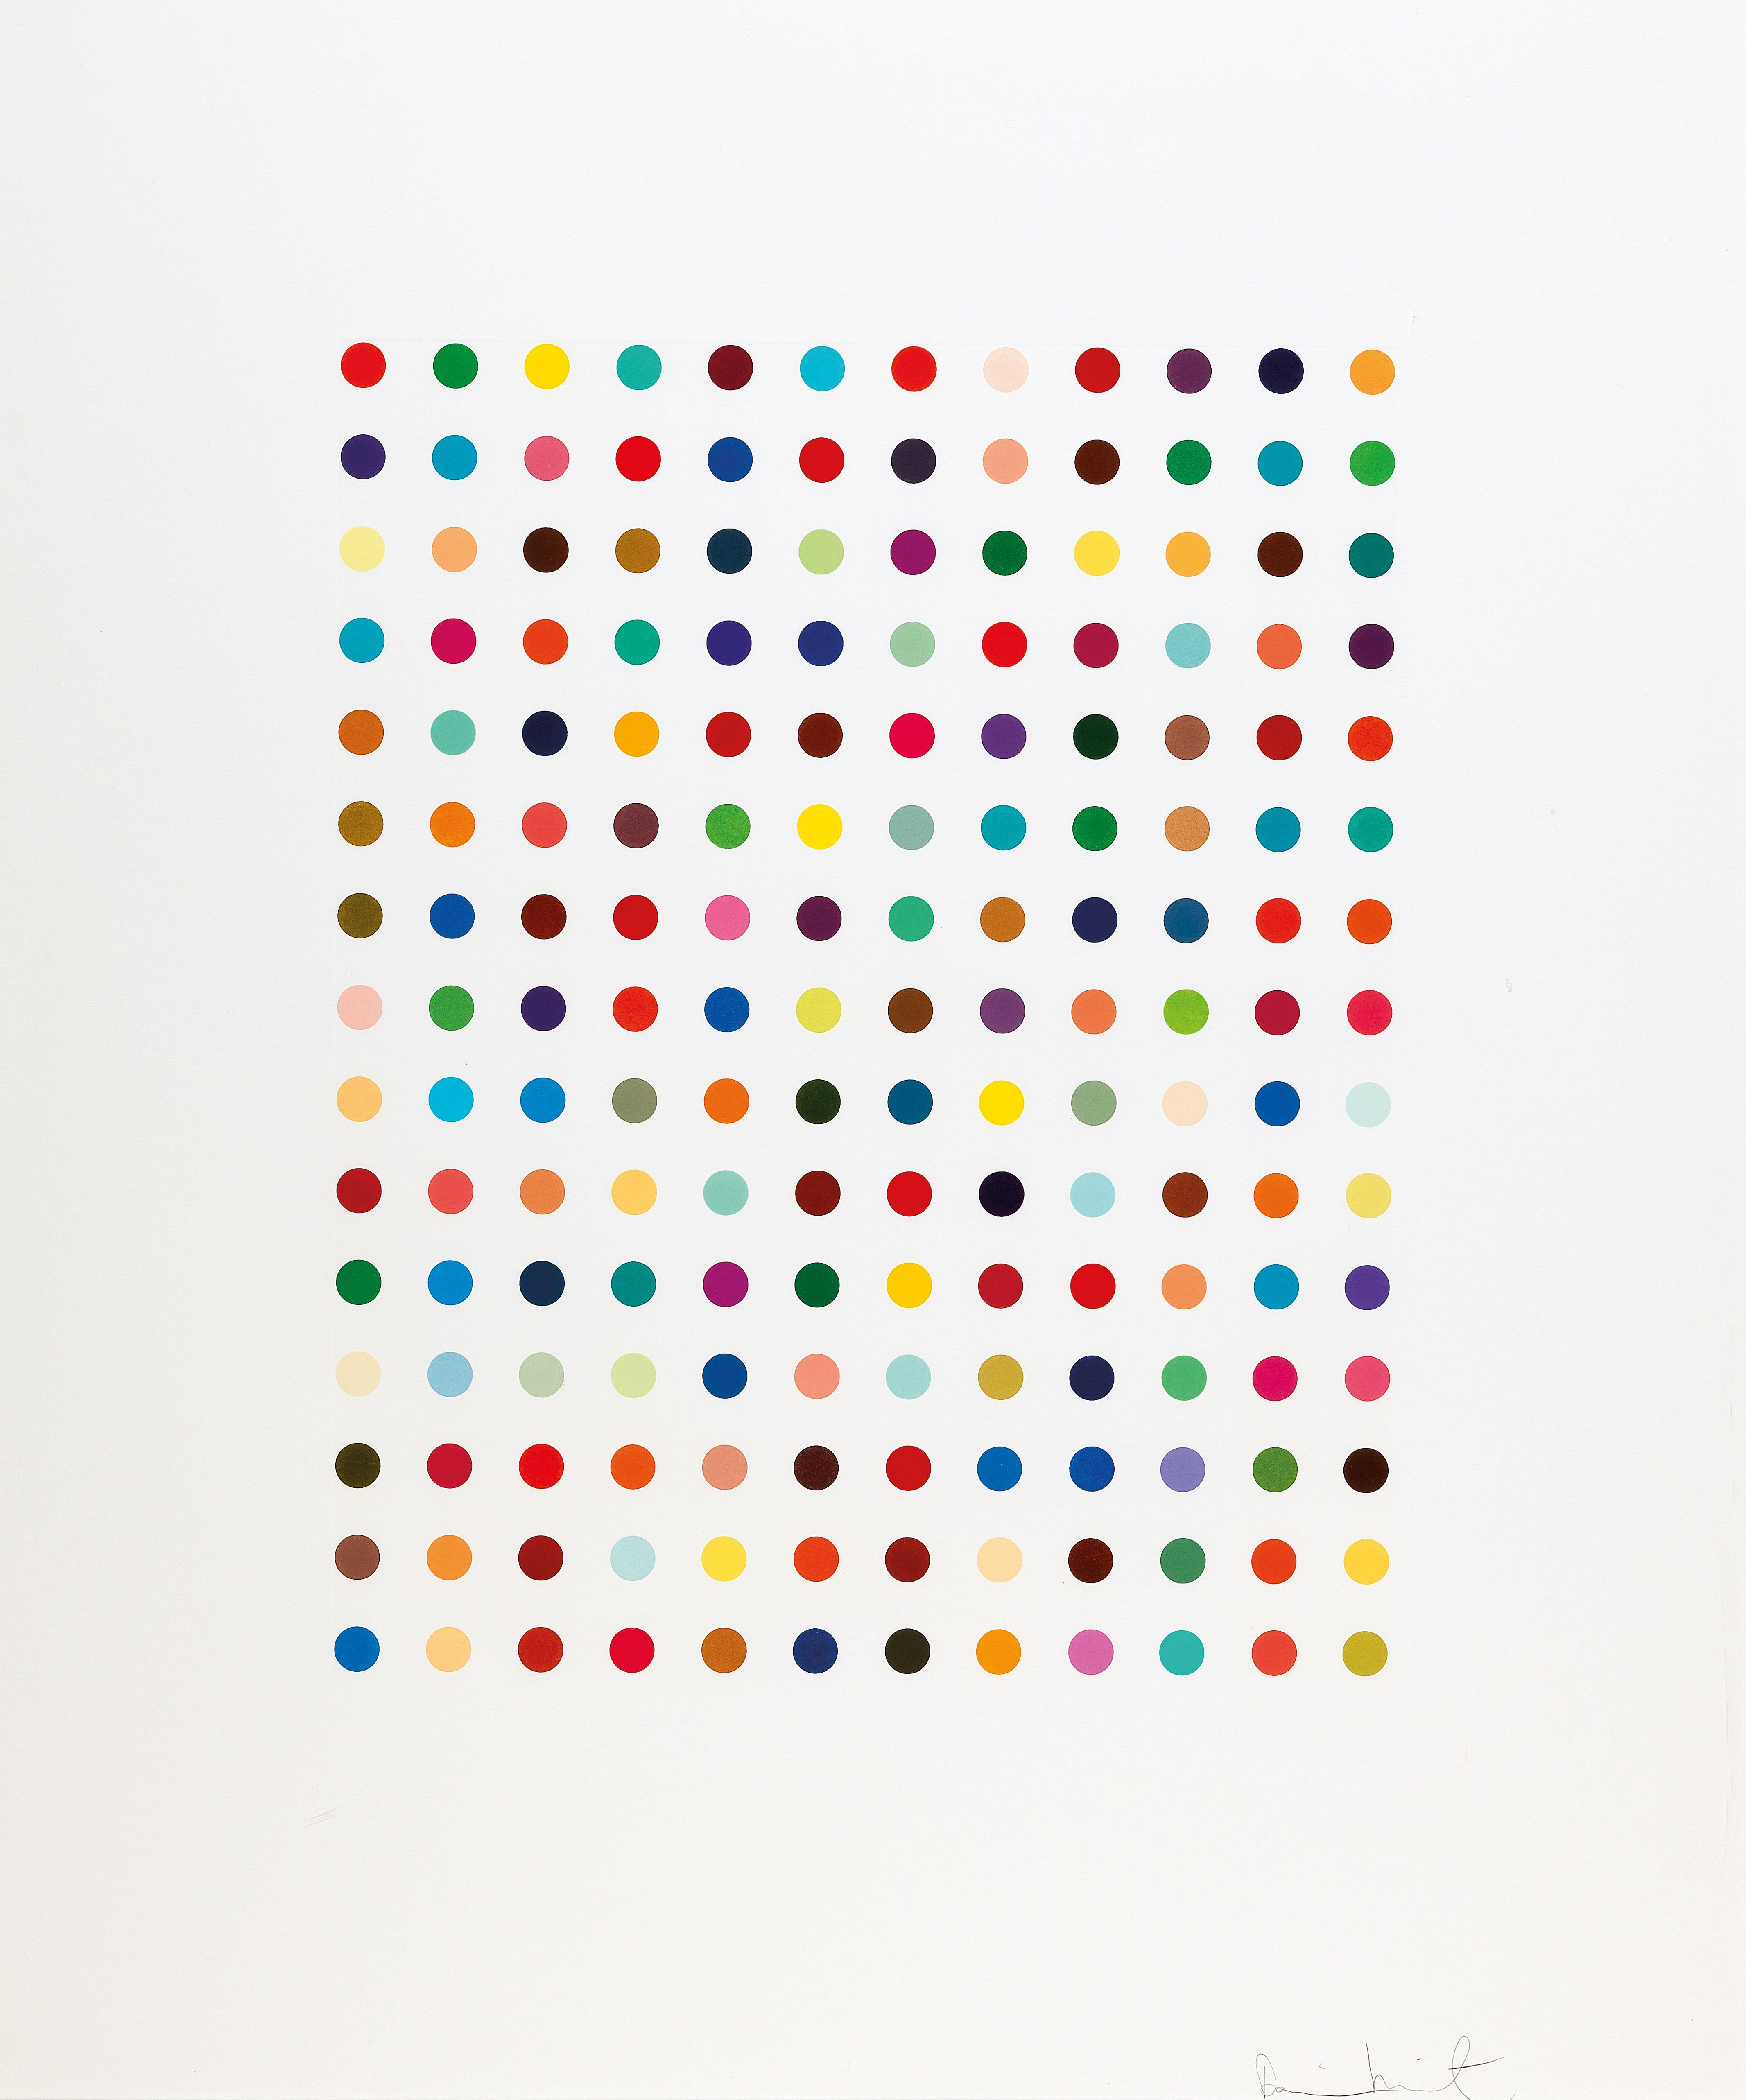 Damien Hirst Post War And Contemporary Art Ii 2019 06 06 Realized Price Eur 19 399 Dorotheum